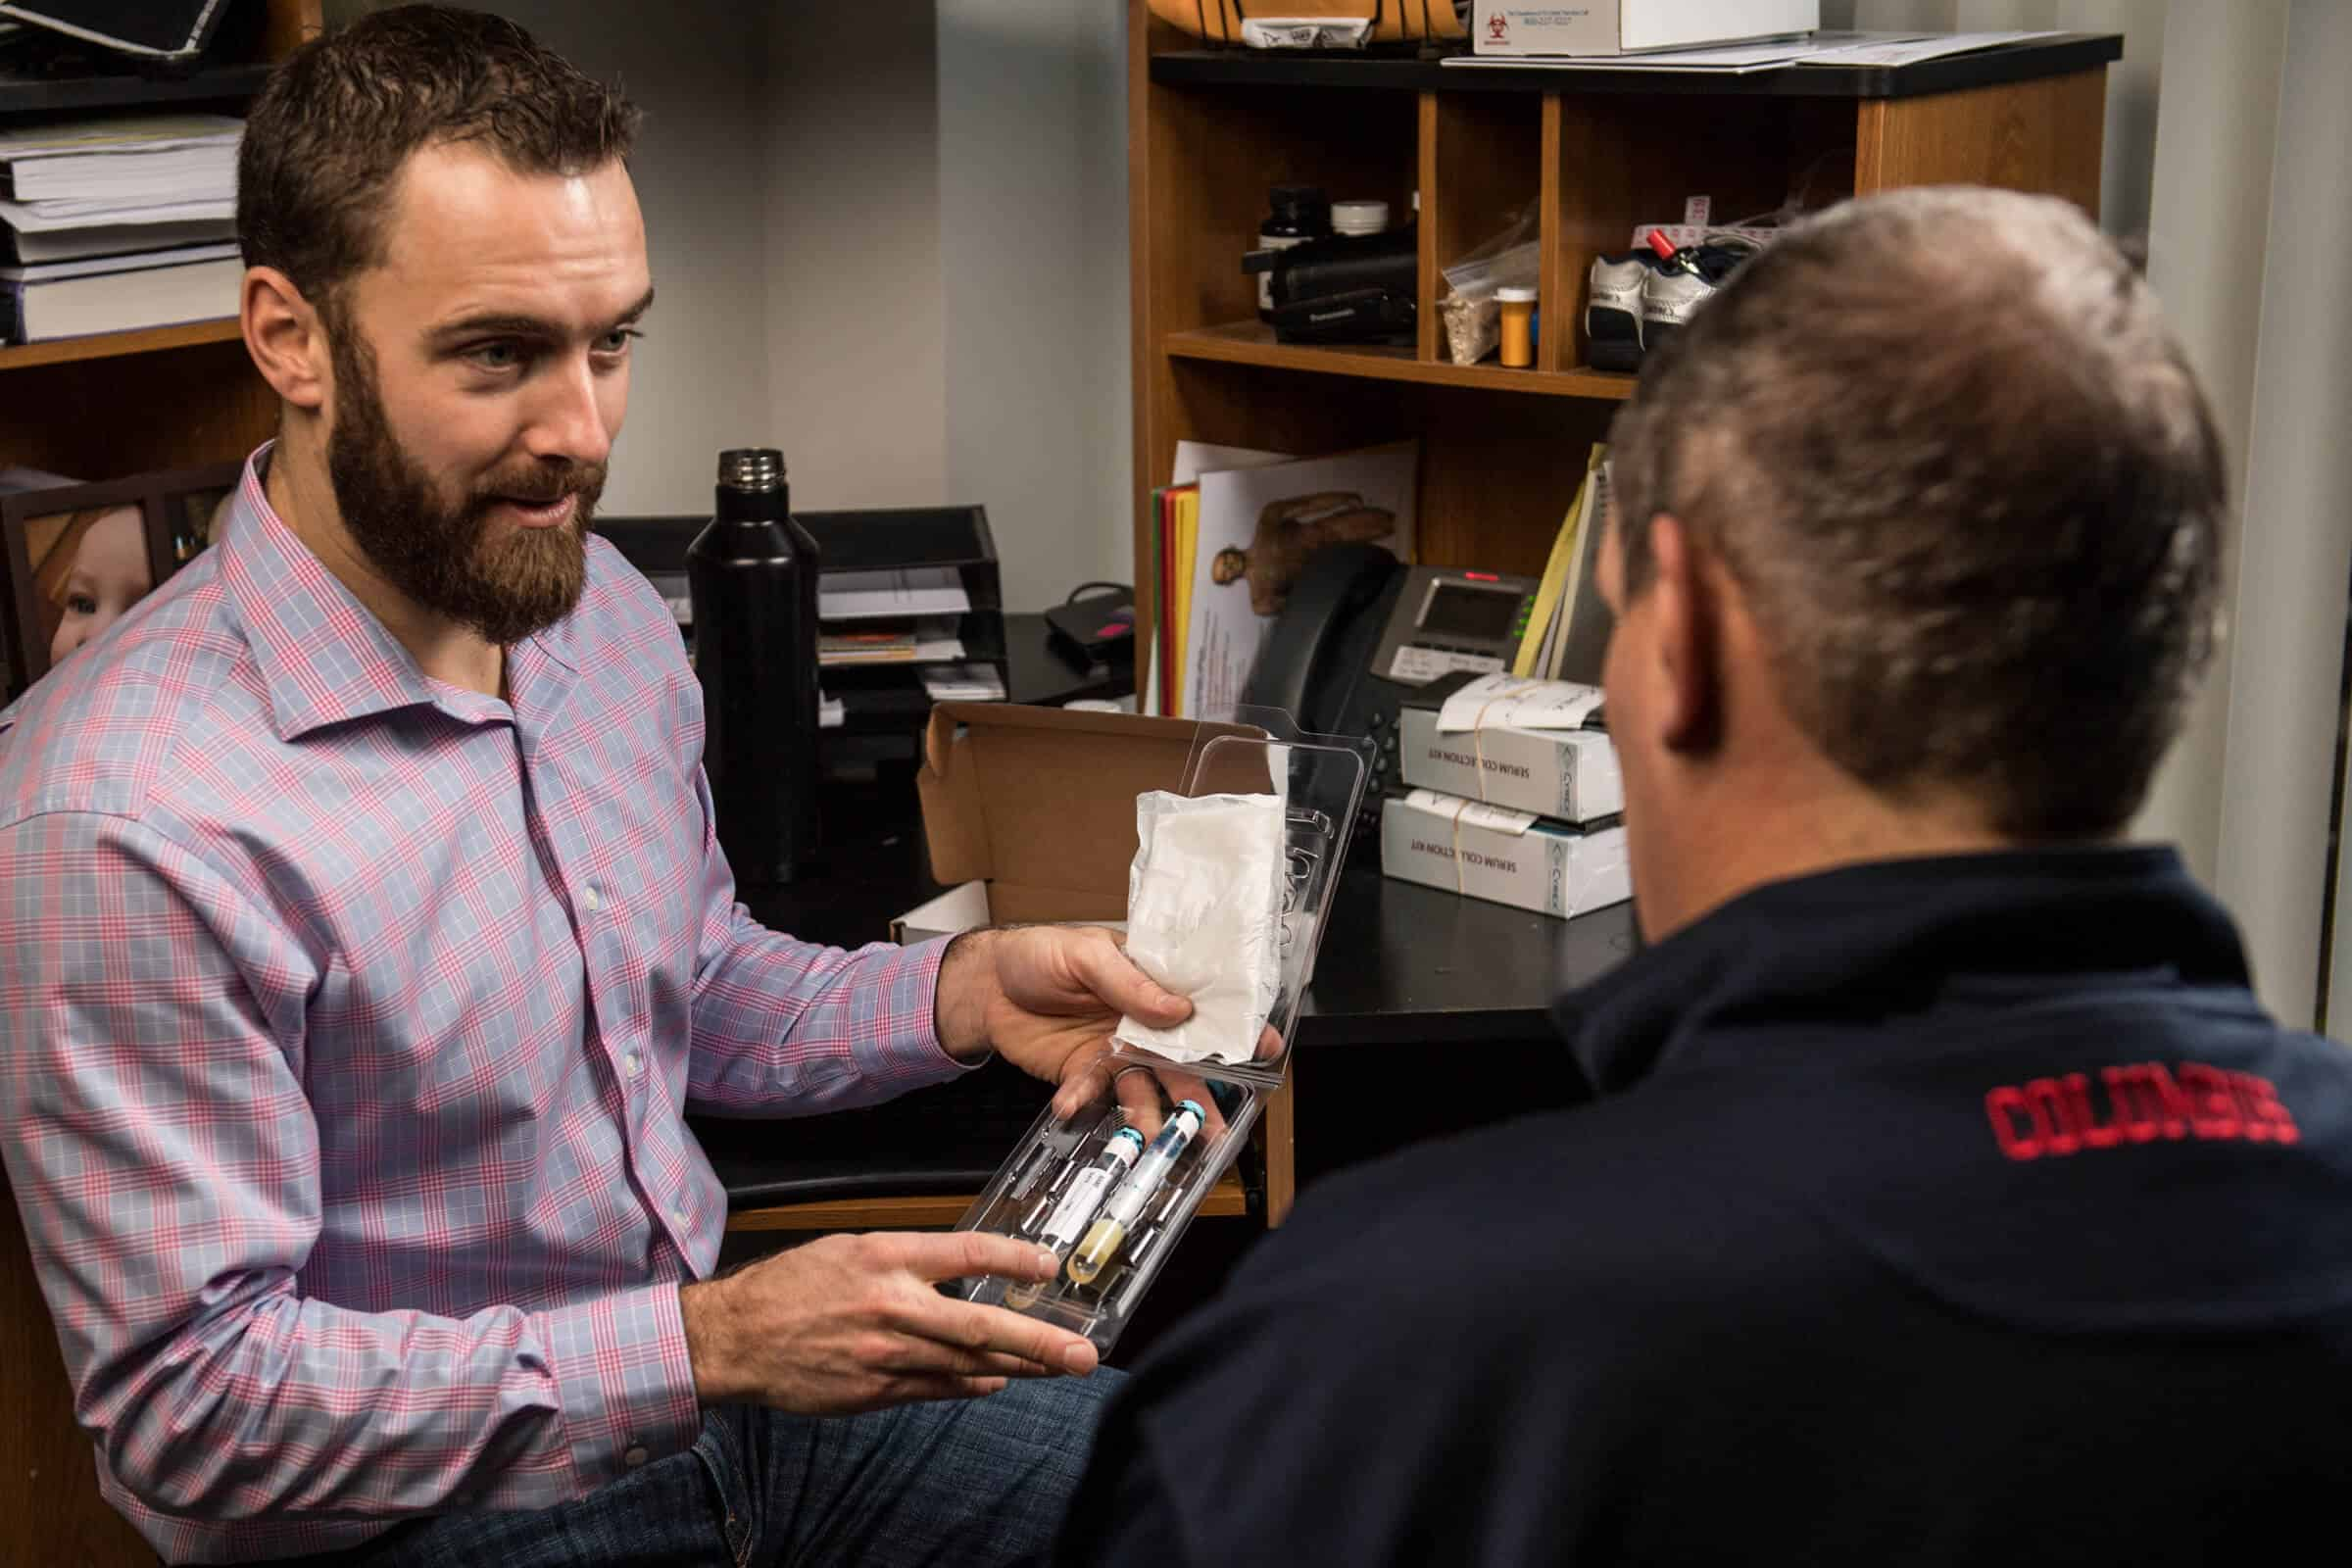 Erik Hensel reviewing medication with patient